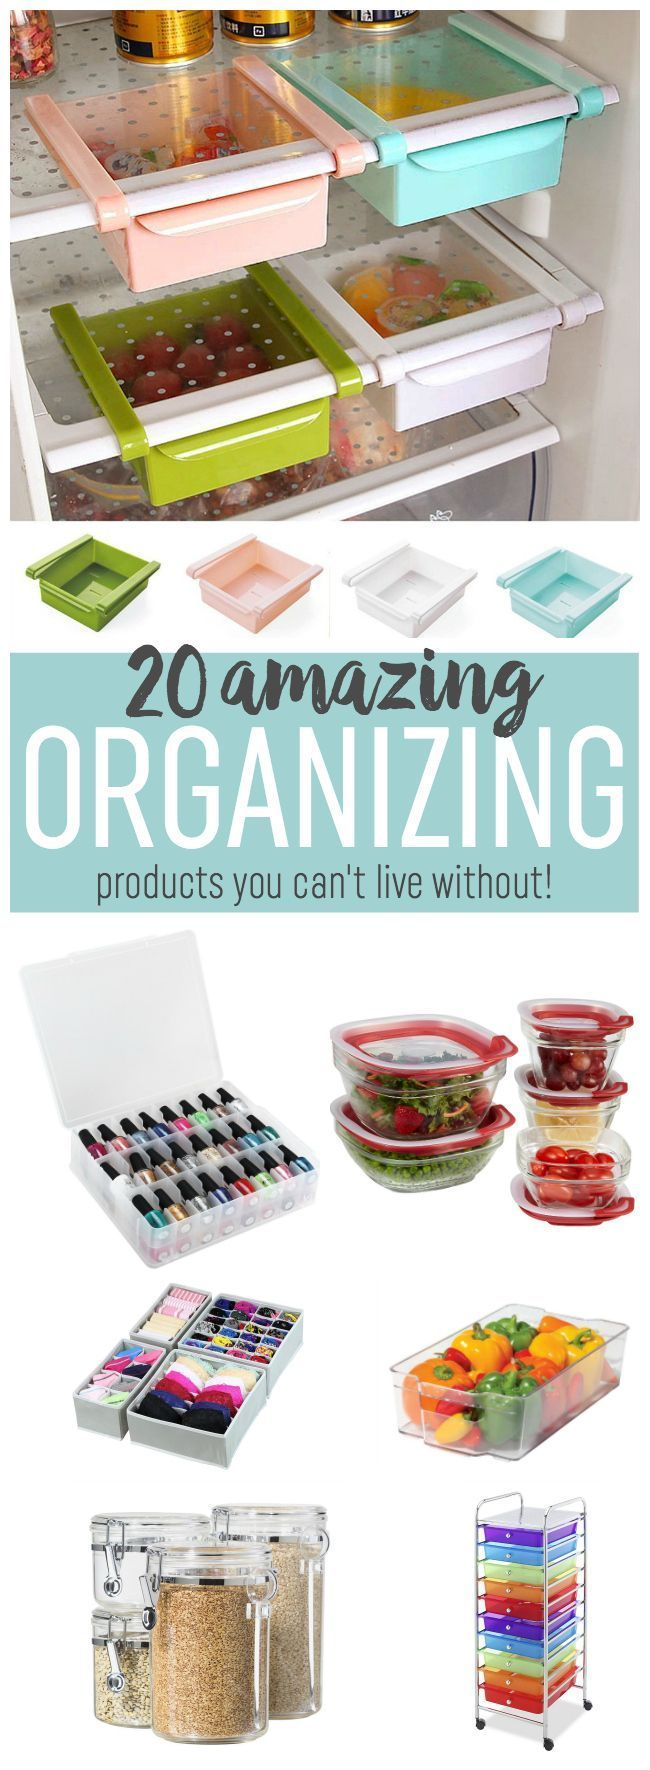 57 best Organizing: Your Kitchen images on Pinterest | Households ...